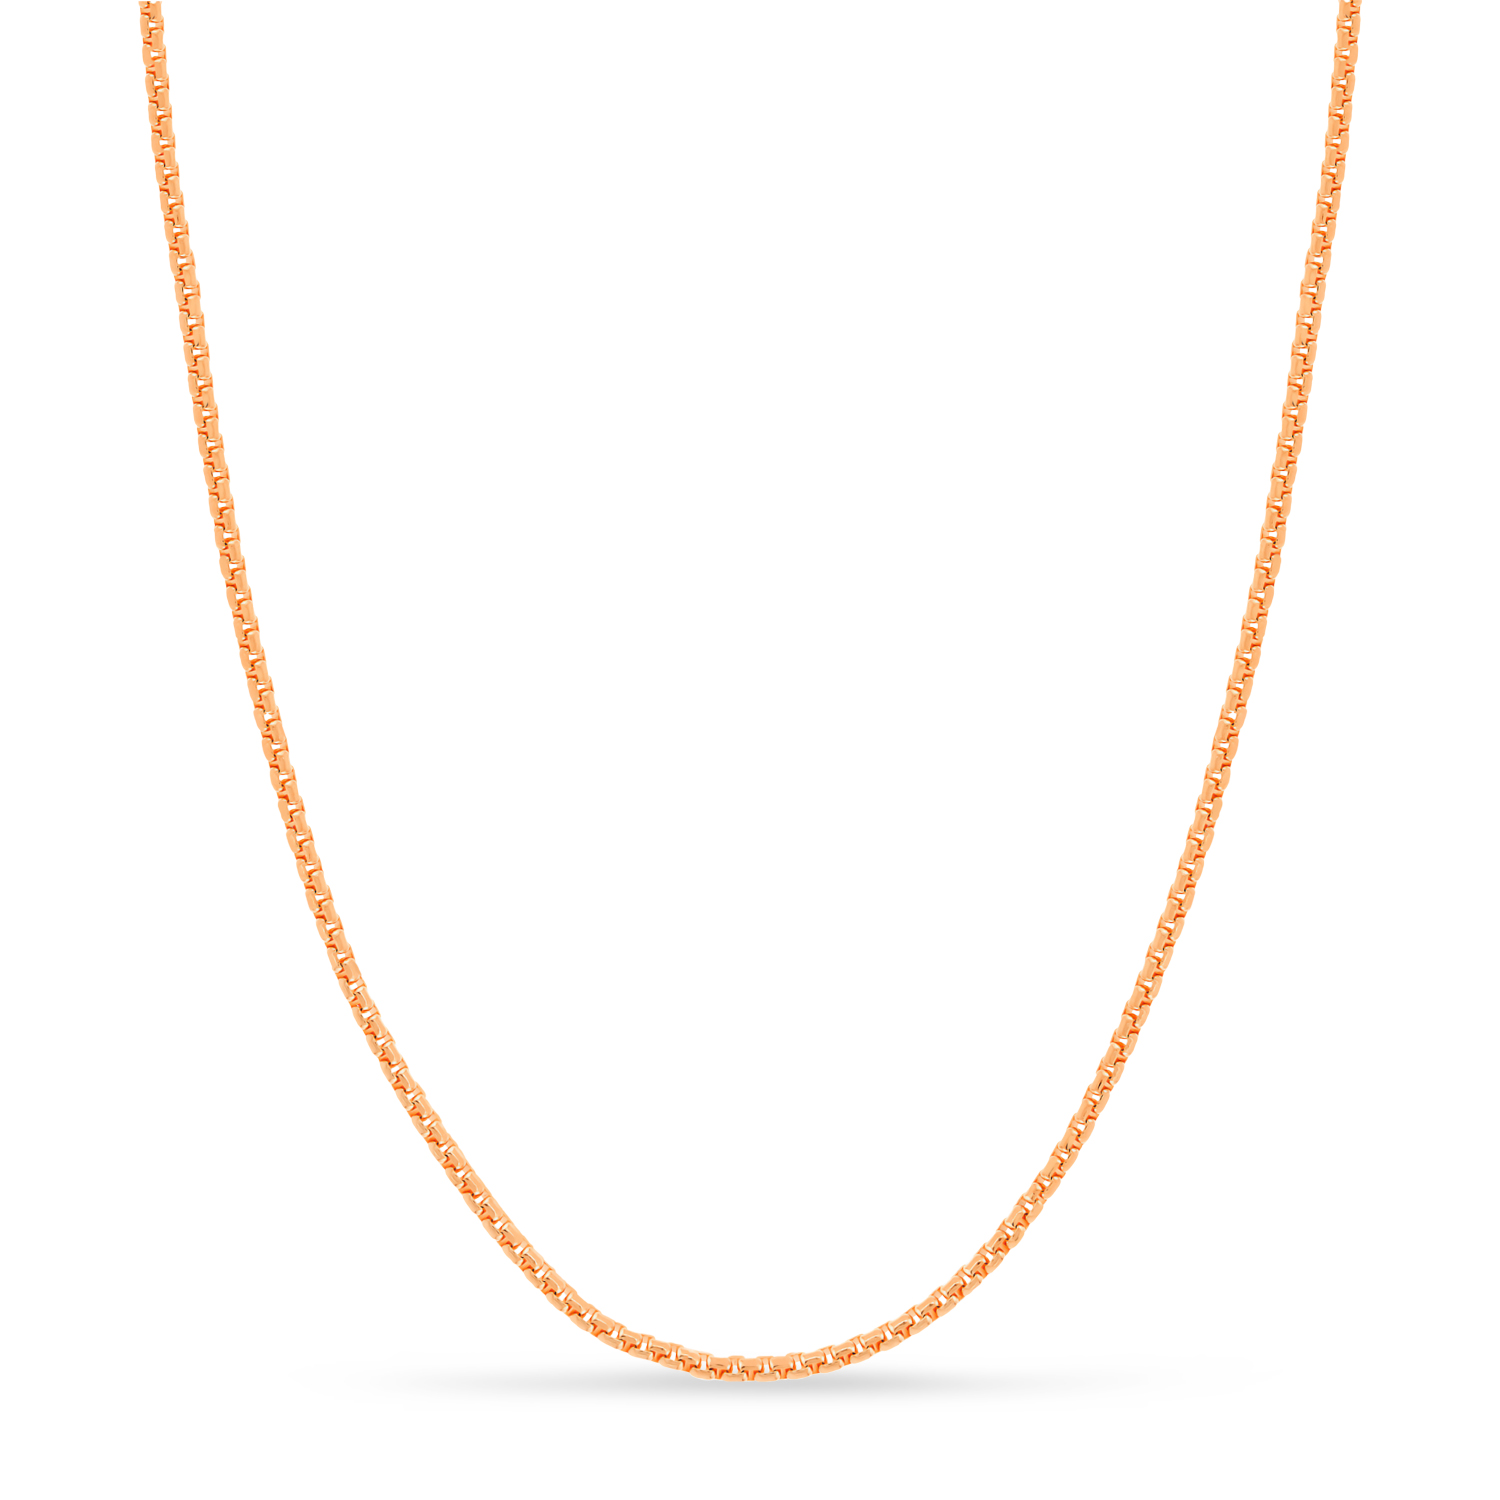 Large Round Box Chain Necklace 14k Rose Gold